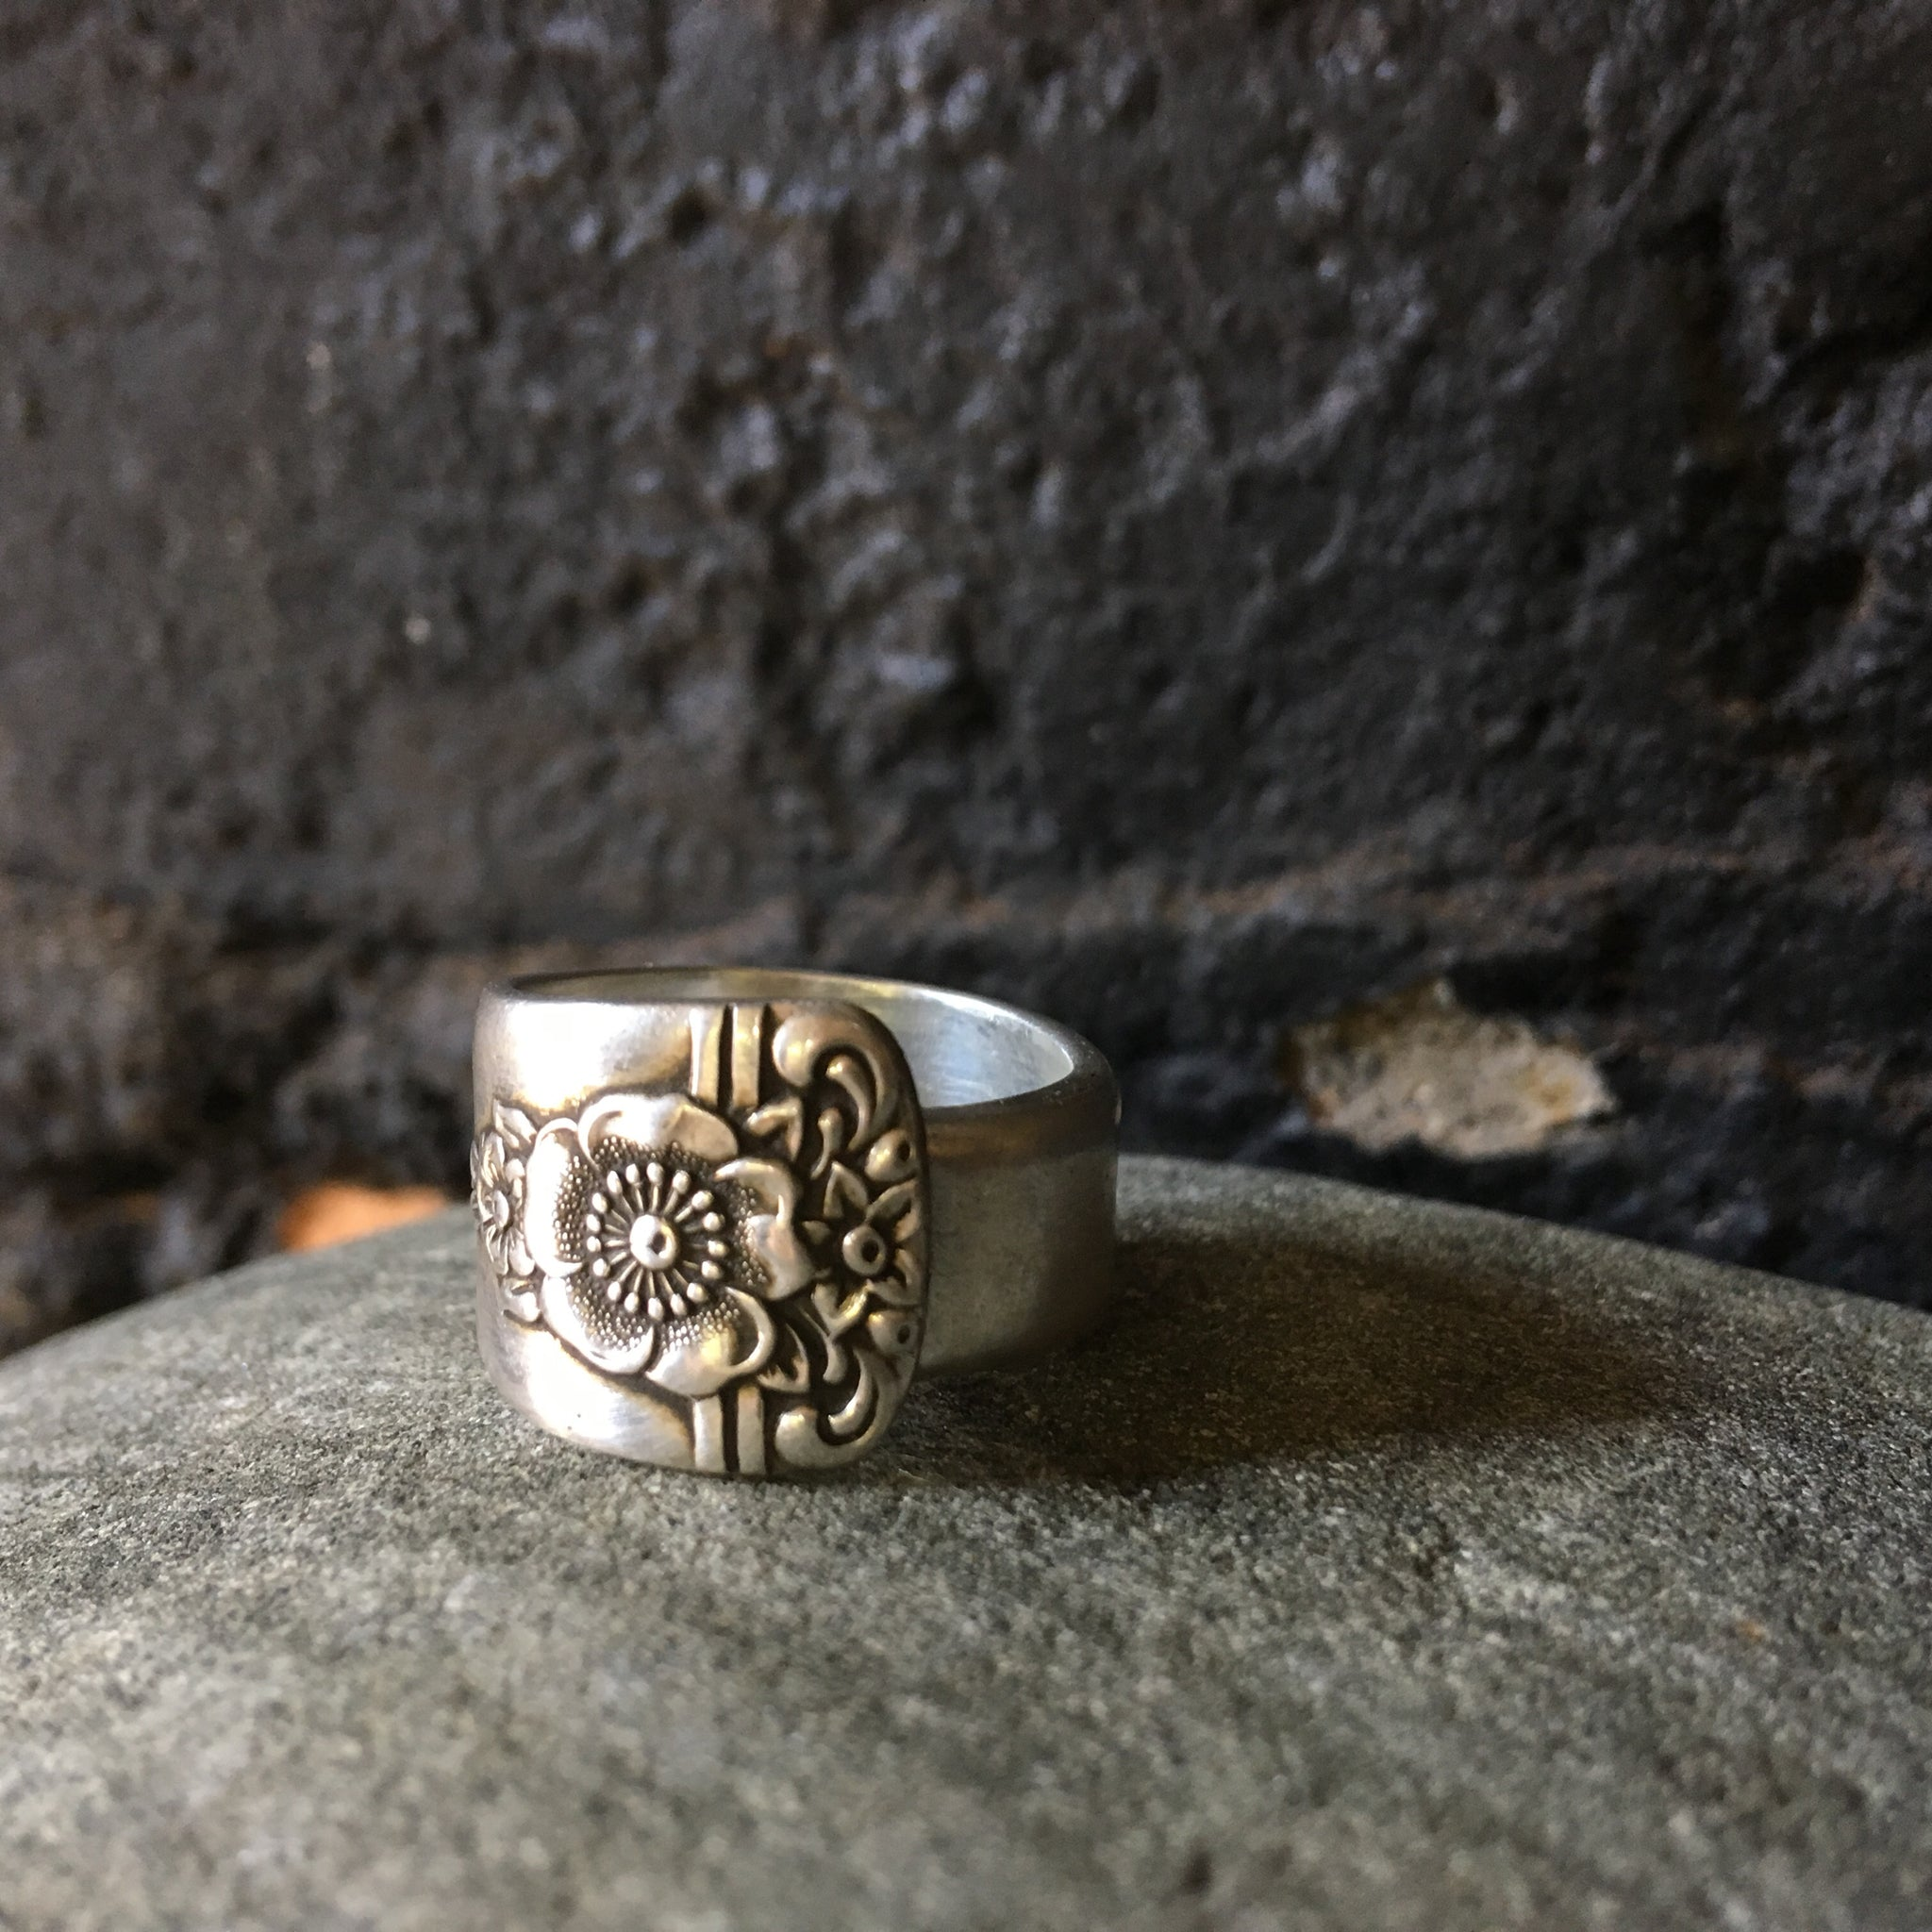 Spoon Ring - floral